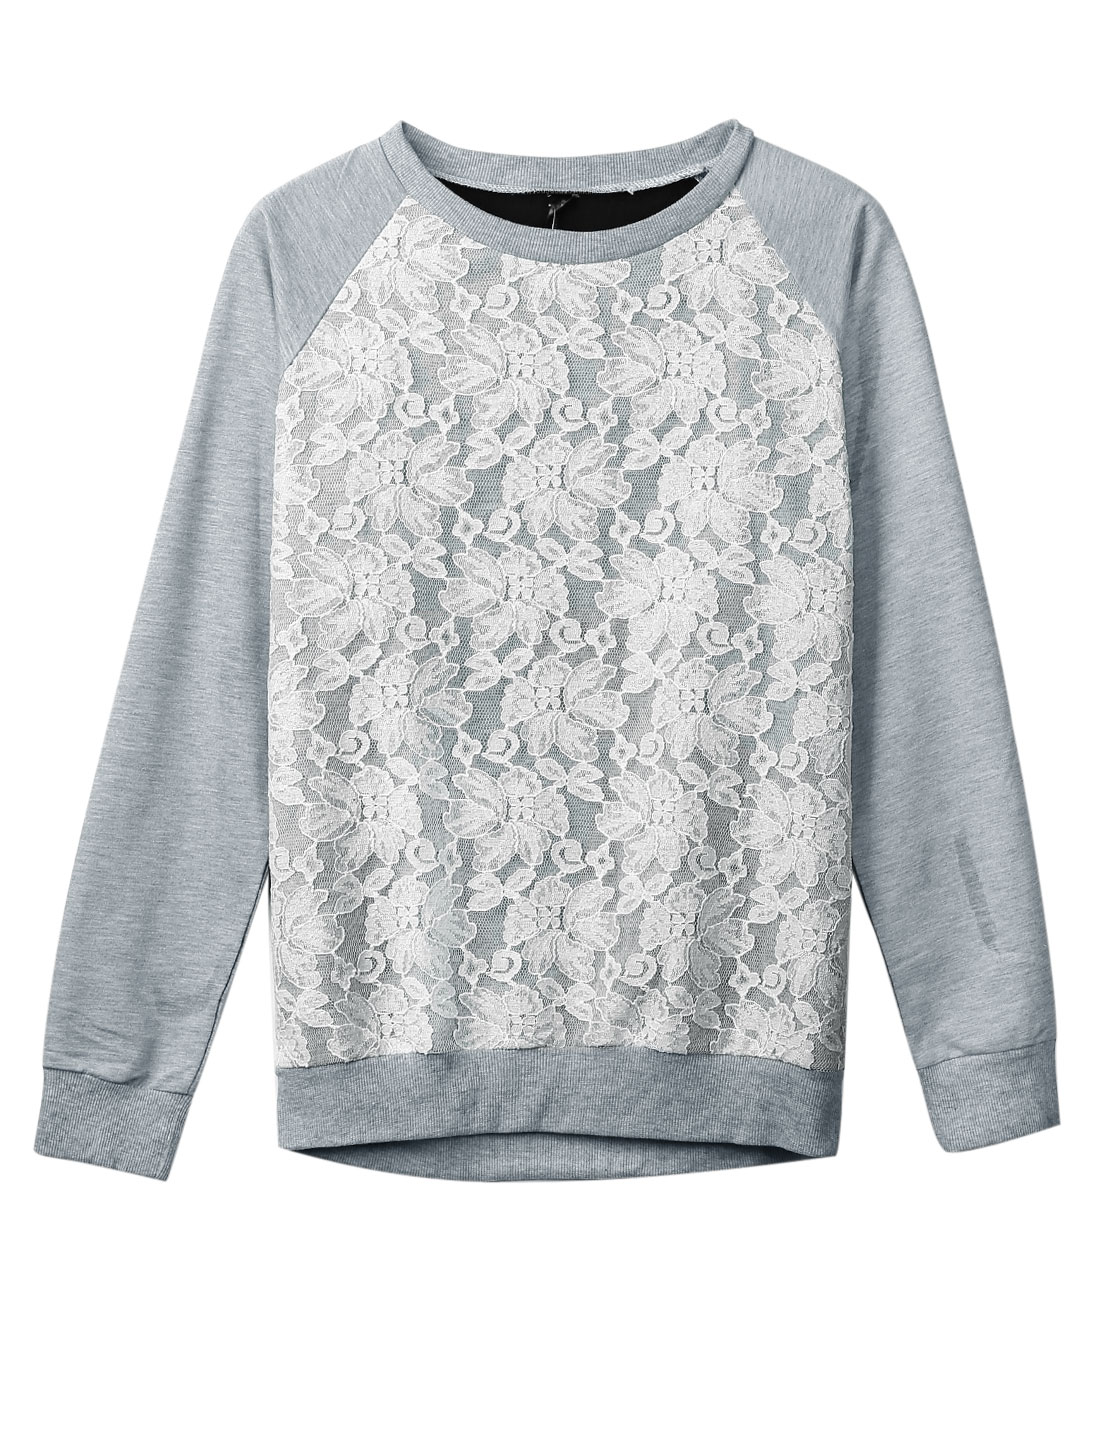 Women Round Neck Lace Panel Raglan Sleeves Top Light Gray Black